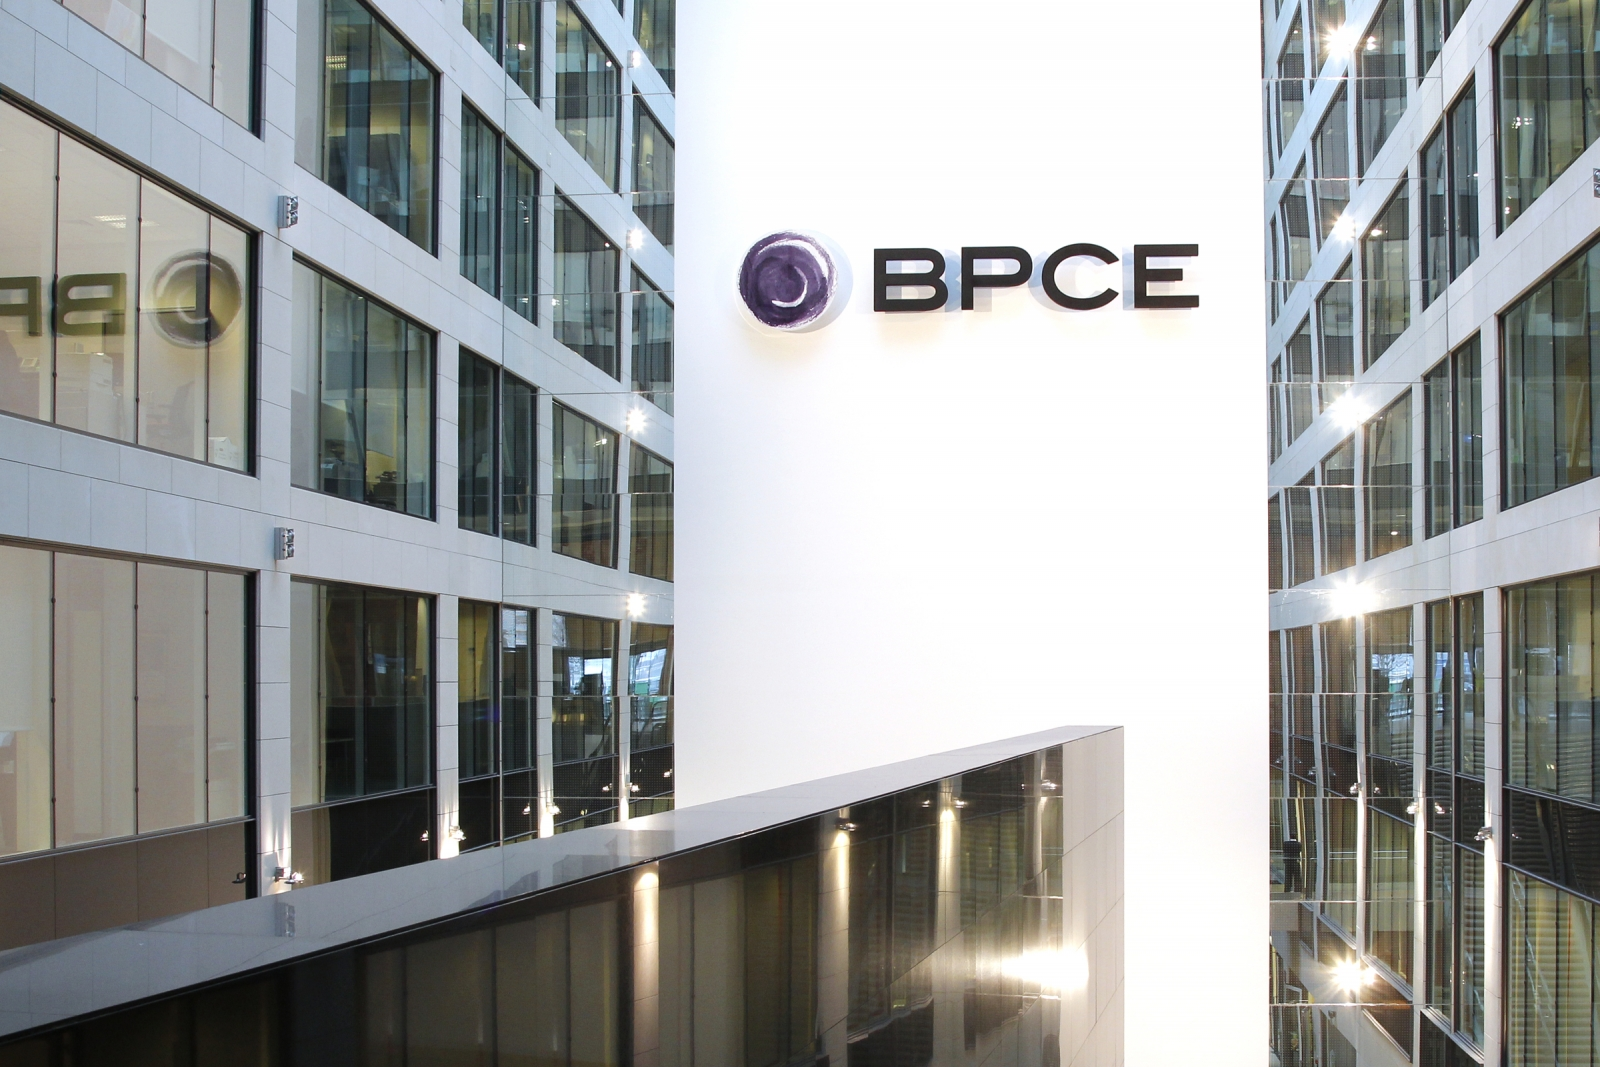 View of the BPCE banking group headquarters during the company's 2011 annual results presentation in Paris